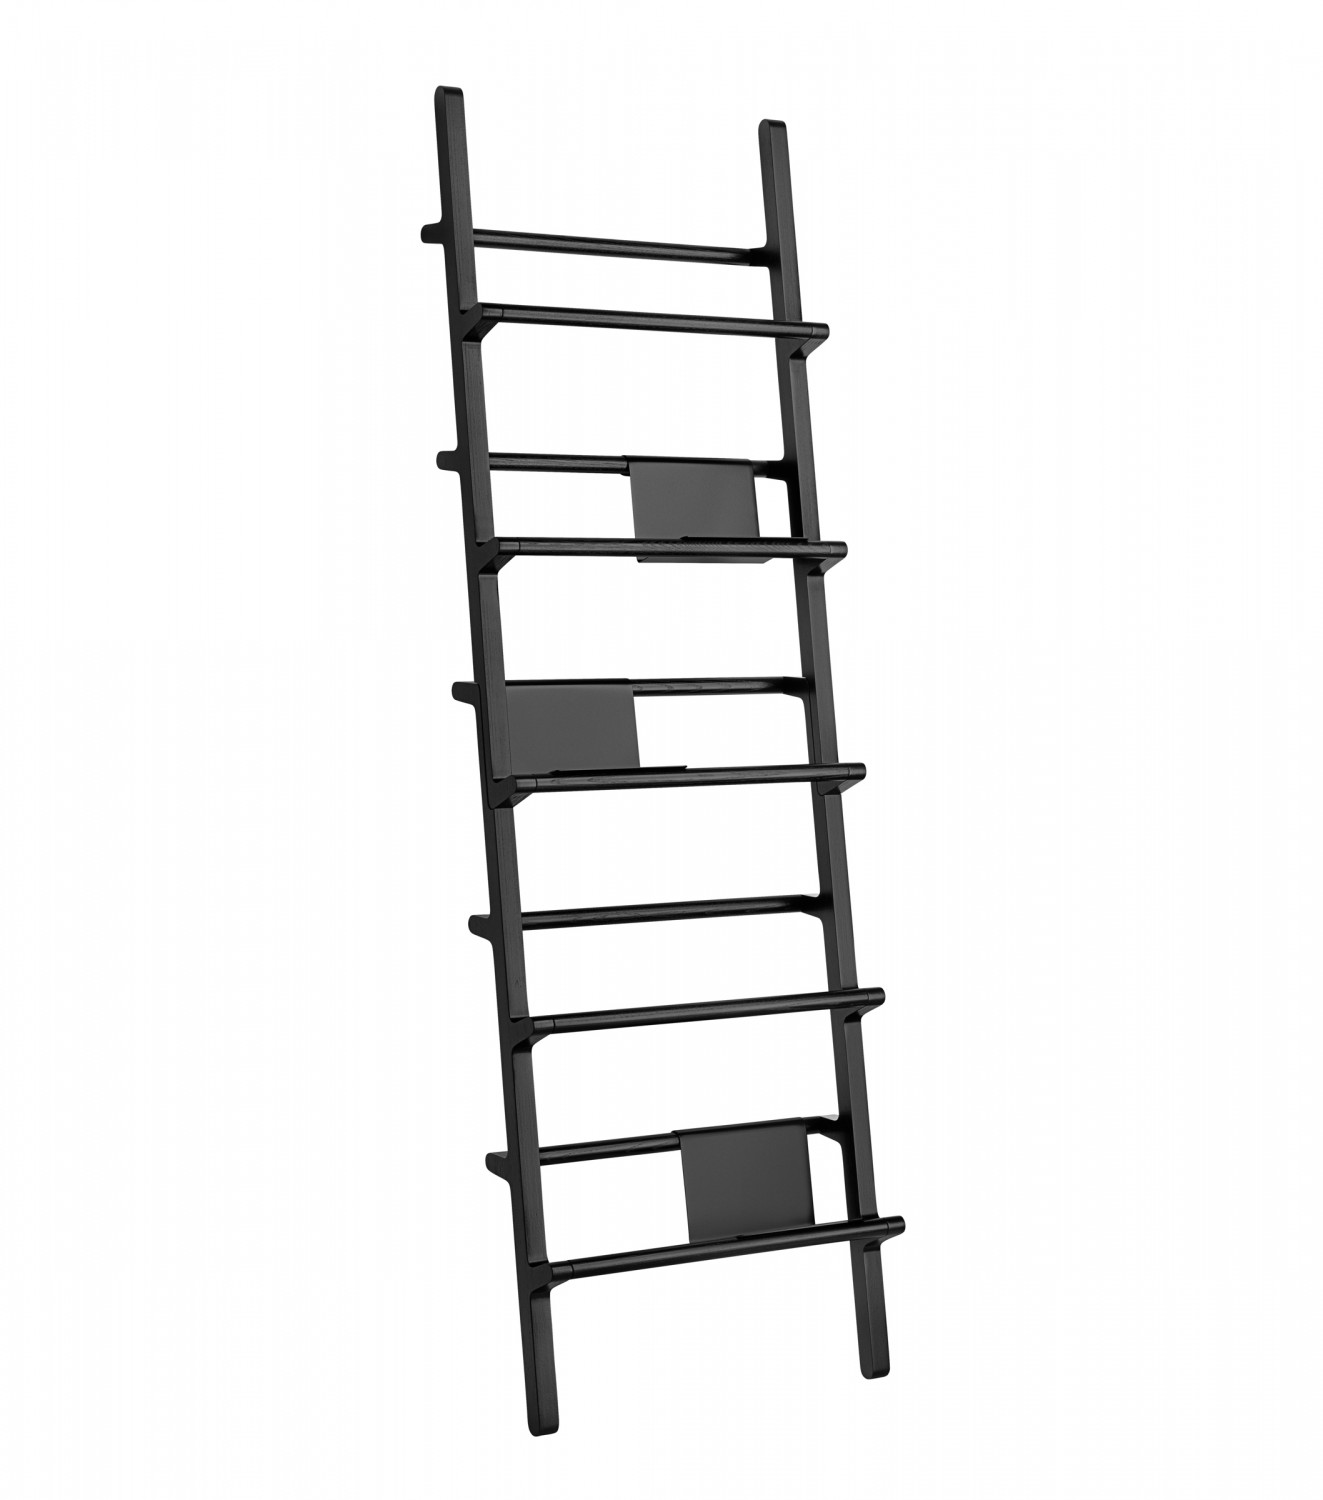 Verso ladder by Mikko Halonen for One Nordic - on flodeau.com - 2